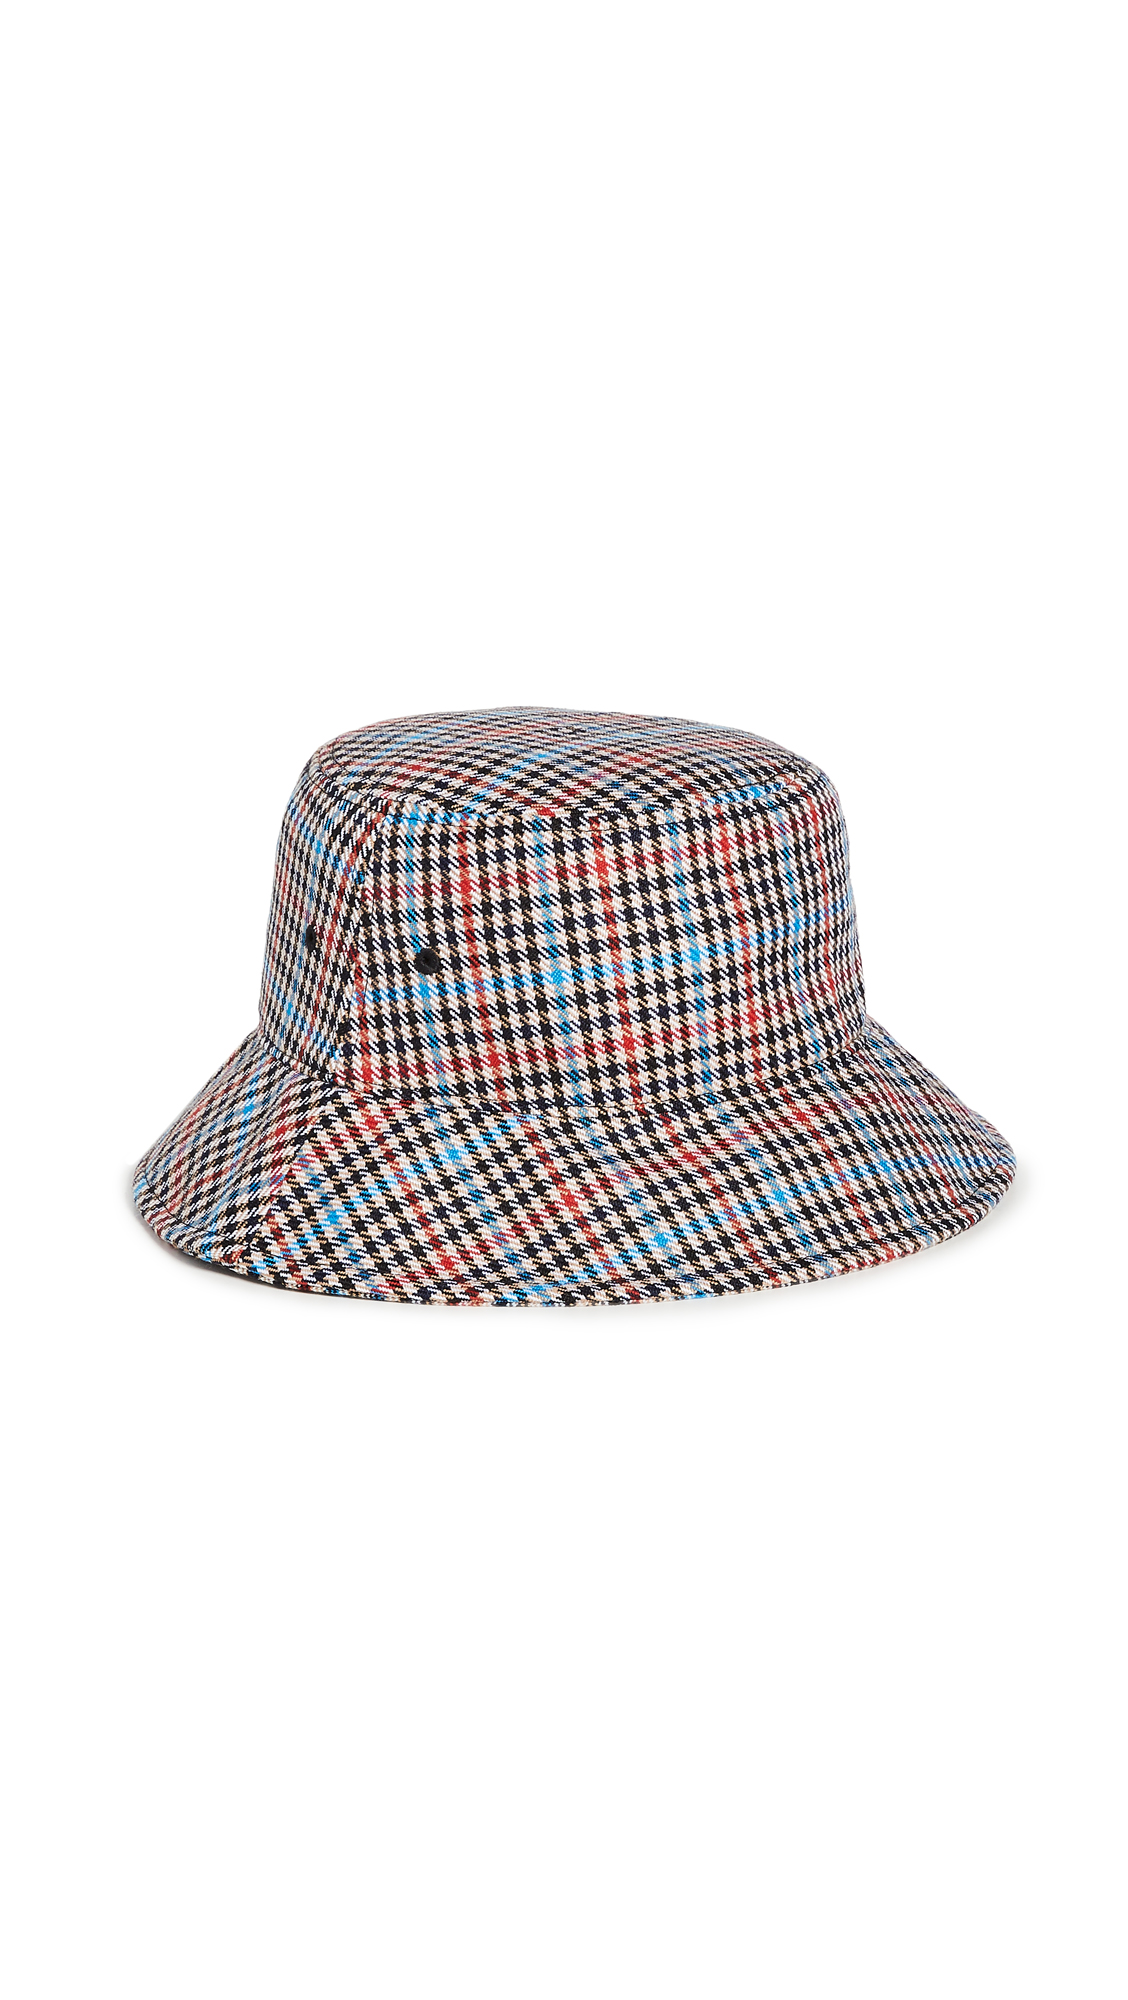 Rag & Bone Bucket Hat In Tan Multi